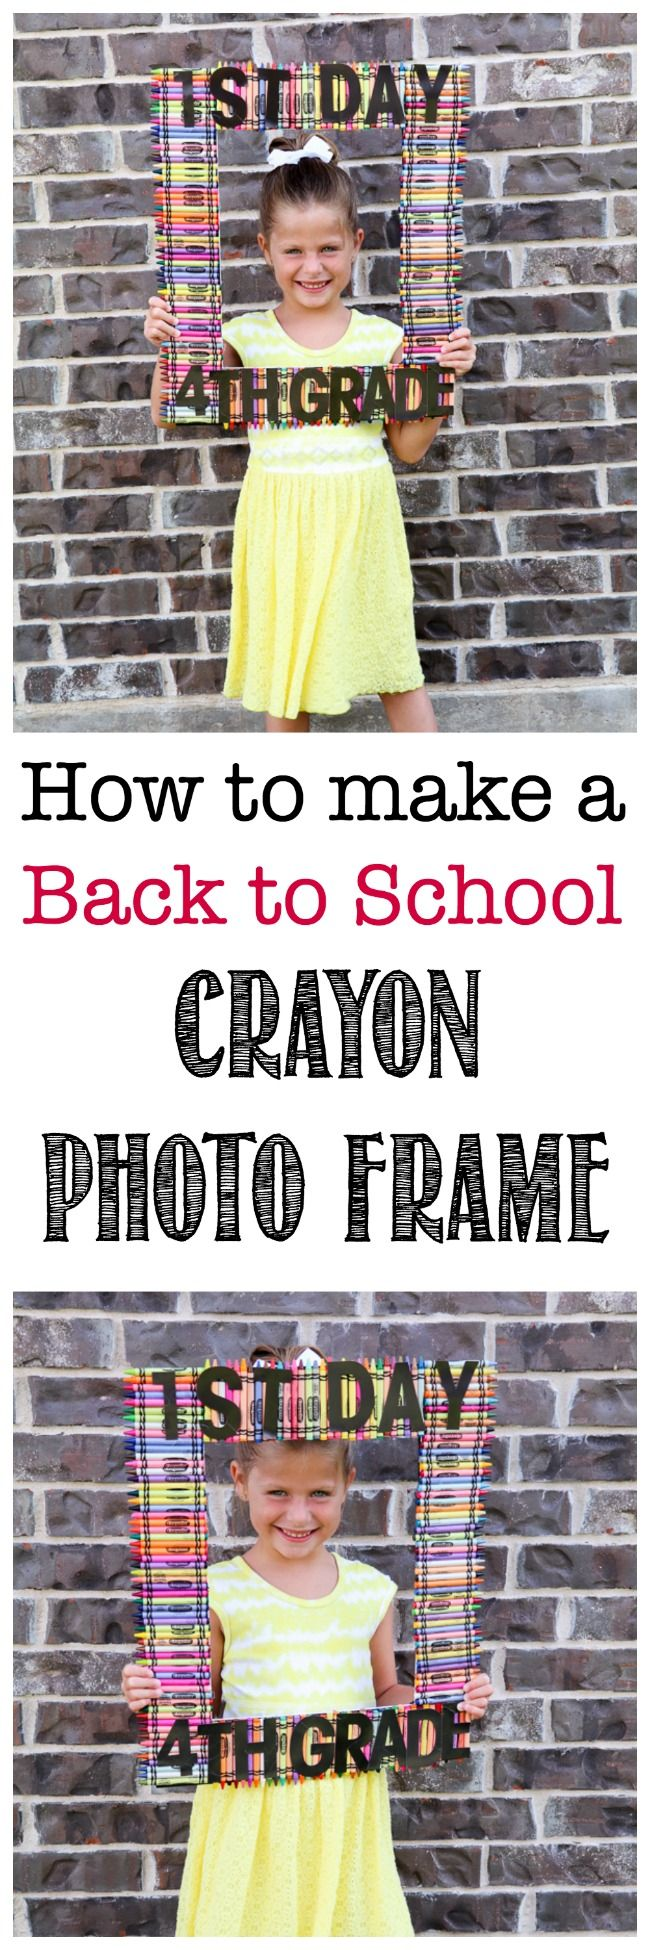 How to make a Back to School Crayon Photo Frame for the first day of school.  via @amodernmomlife